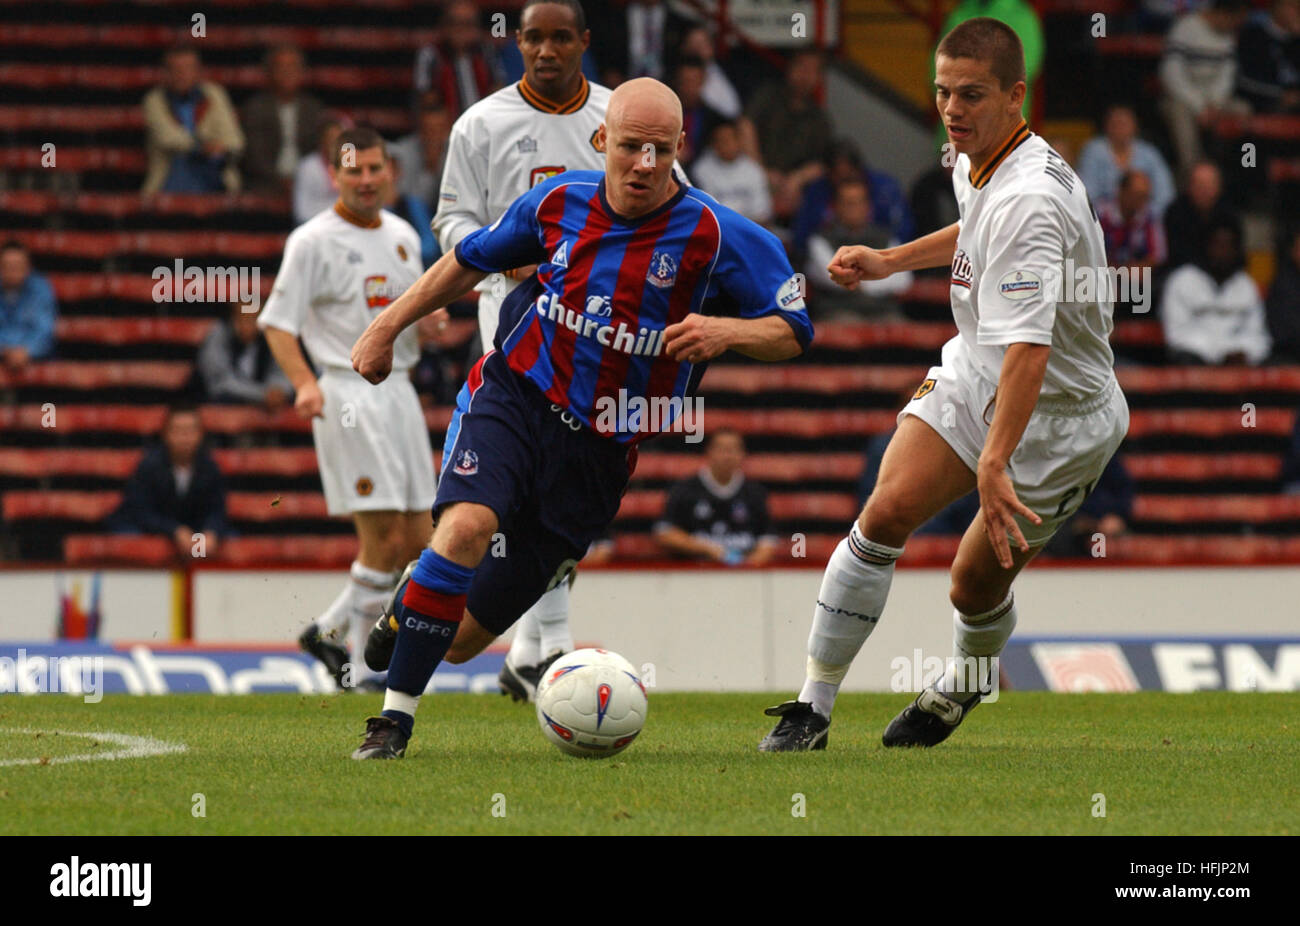 Footballer Andy Johnson playing for Crystal Palace 2002 - Stock Image